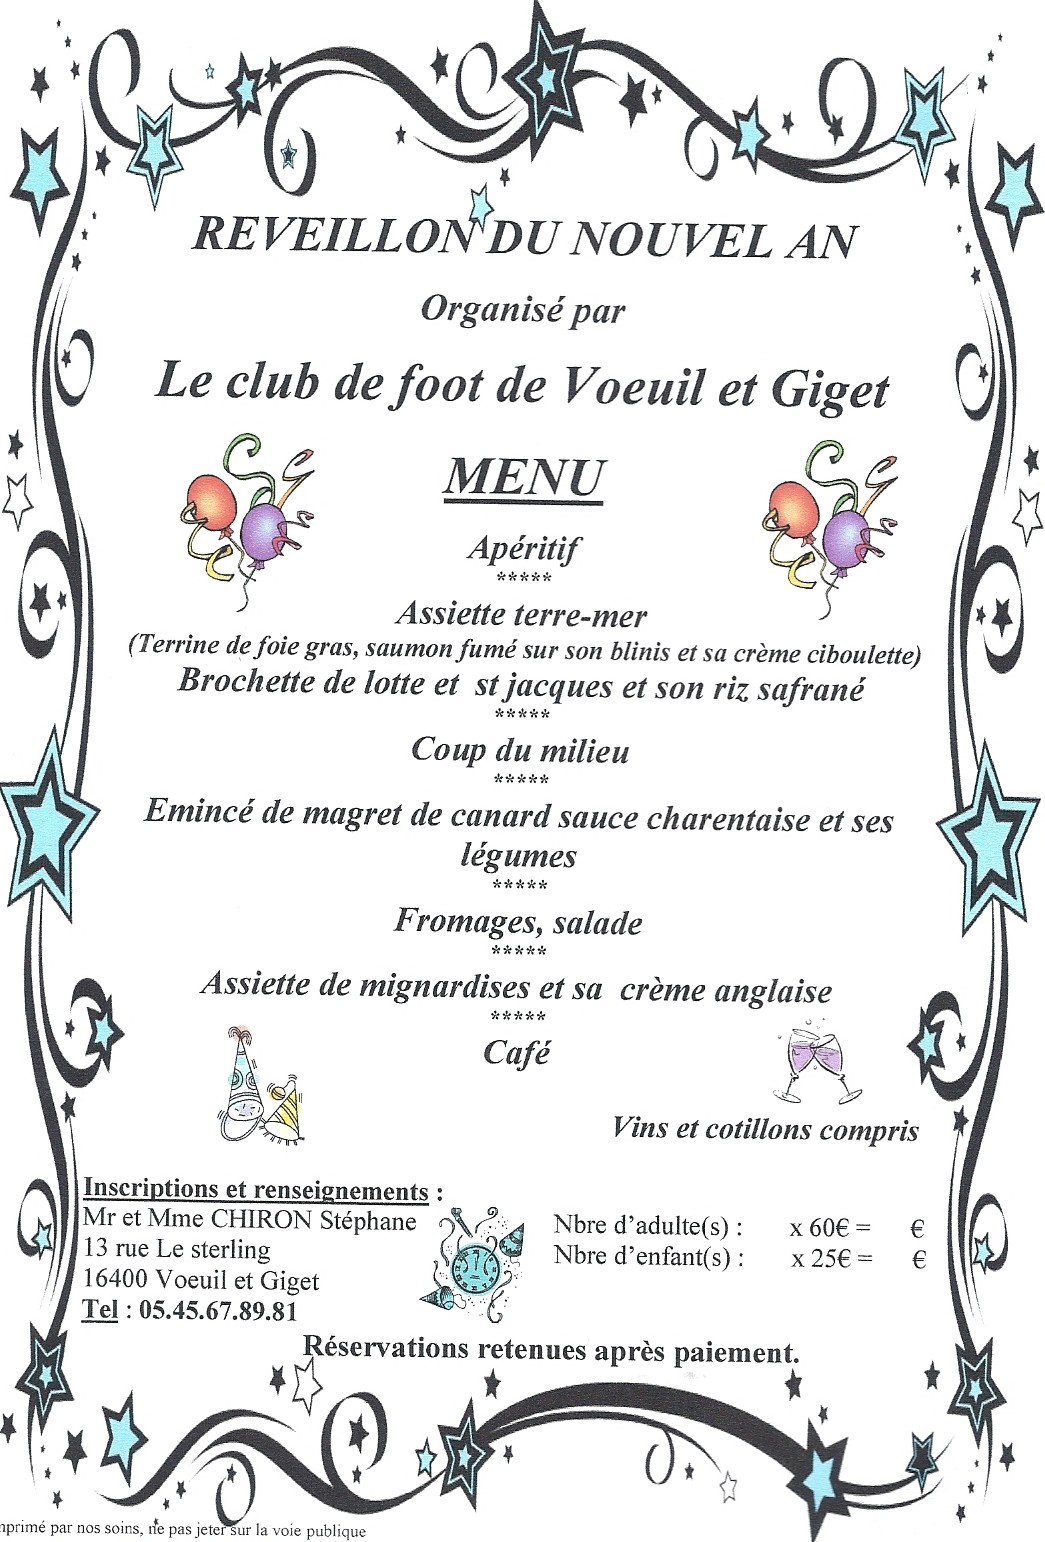 menu du reveillon du nouvel an